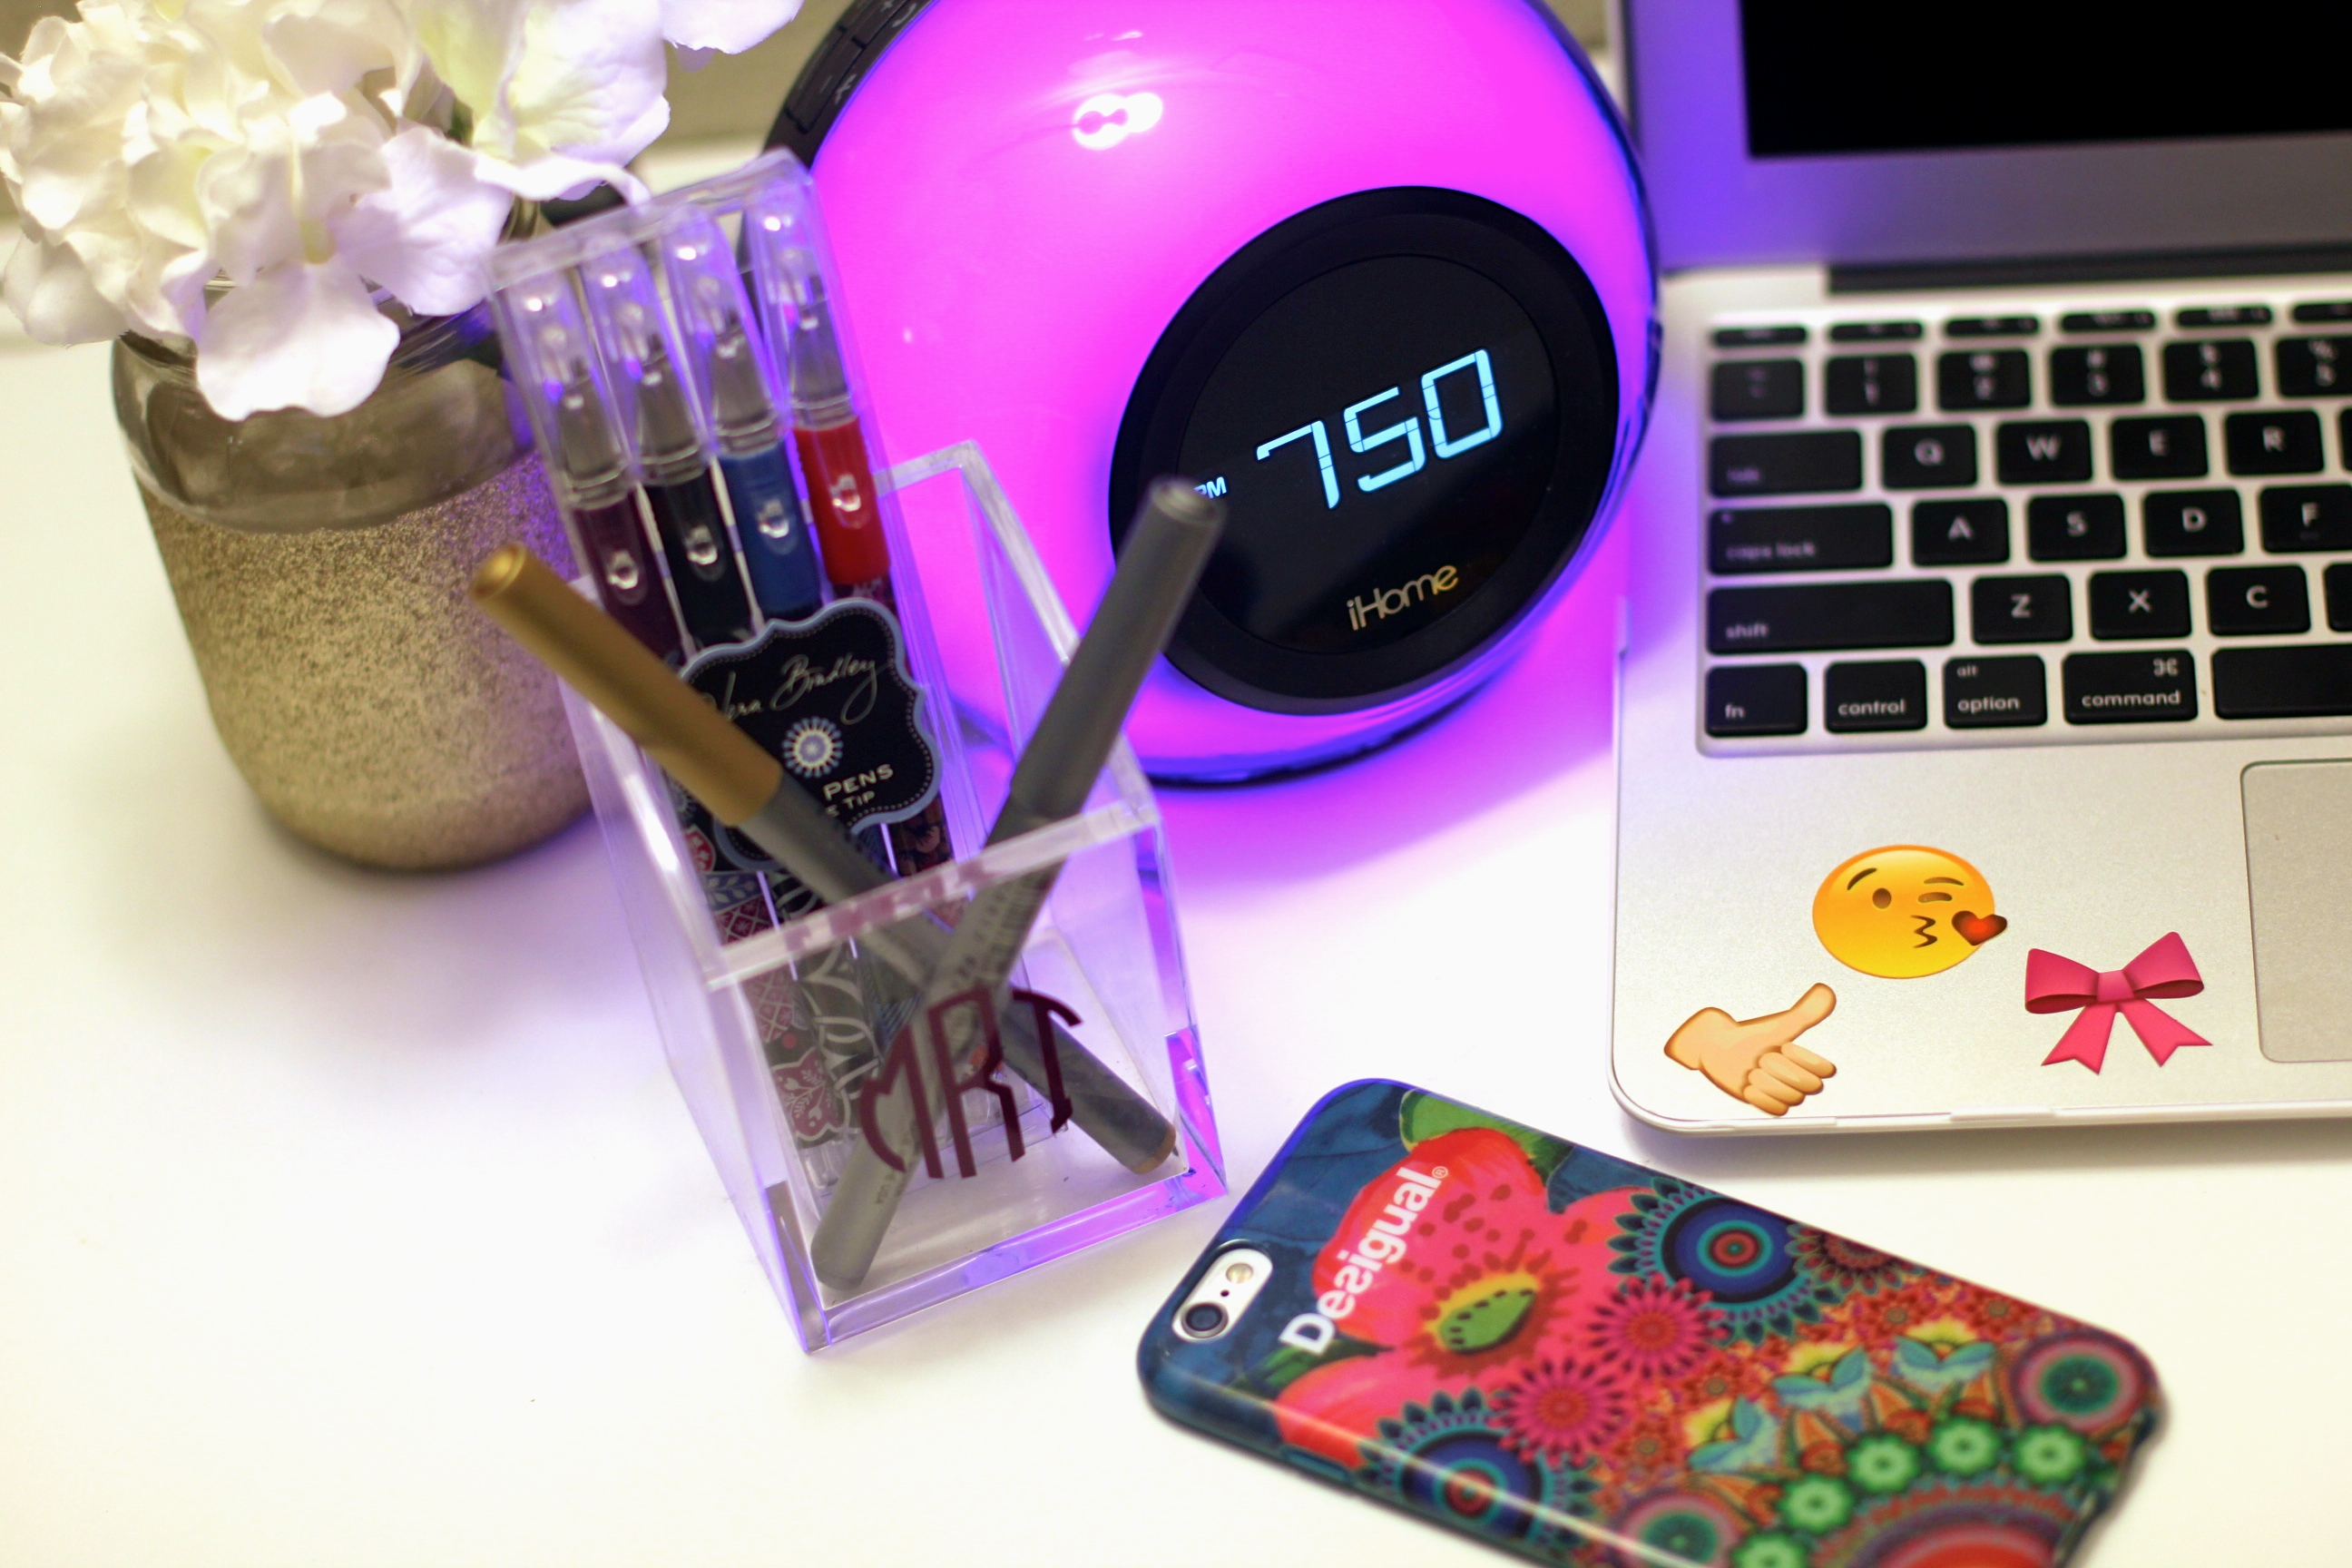 missyonmadison, melissa tierney, tech gifts, 2015 gift guide, gift ideas, 2015 top gifts, holiday gift guide, glitter mason jar, macbook air 11 inch, white marble macbook air case, idecoz, tech accessories, nordstrom, nordstrom tech gifts, idecoz phone accessories, desigual, desigual iphone case, iphone cases, stocking stuffers, vera bradley gel pens, ihome alarm clock, ihome stereo, ihome system,